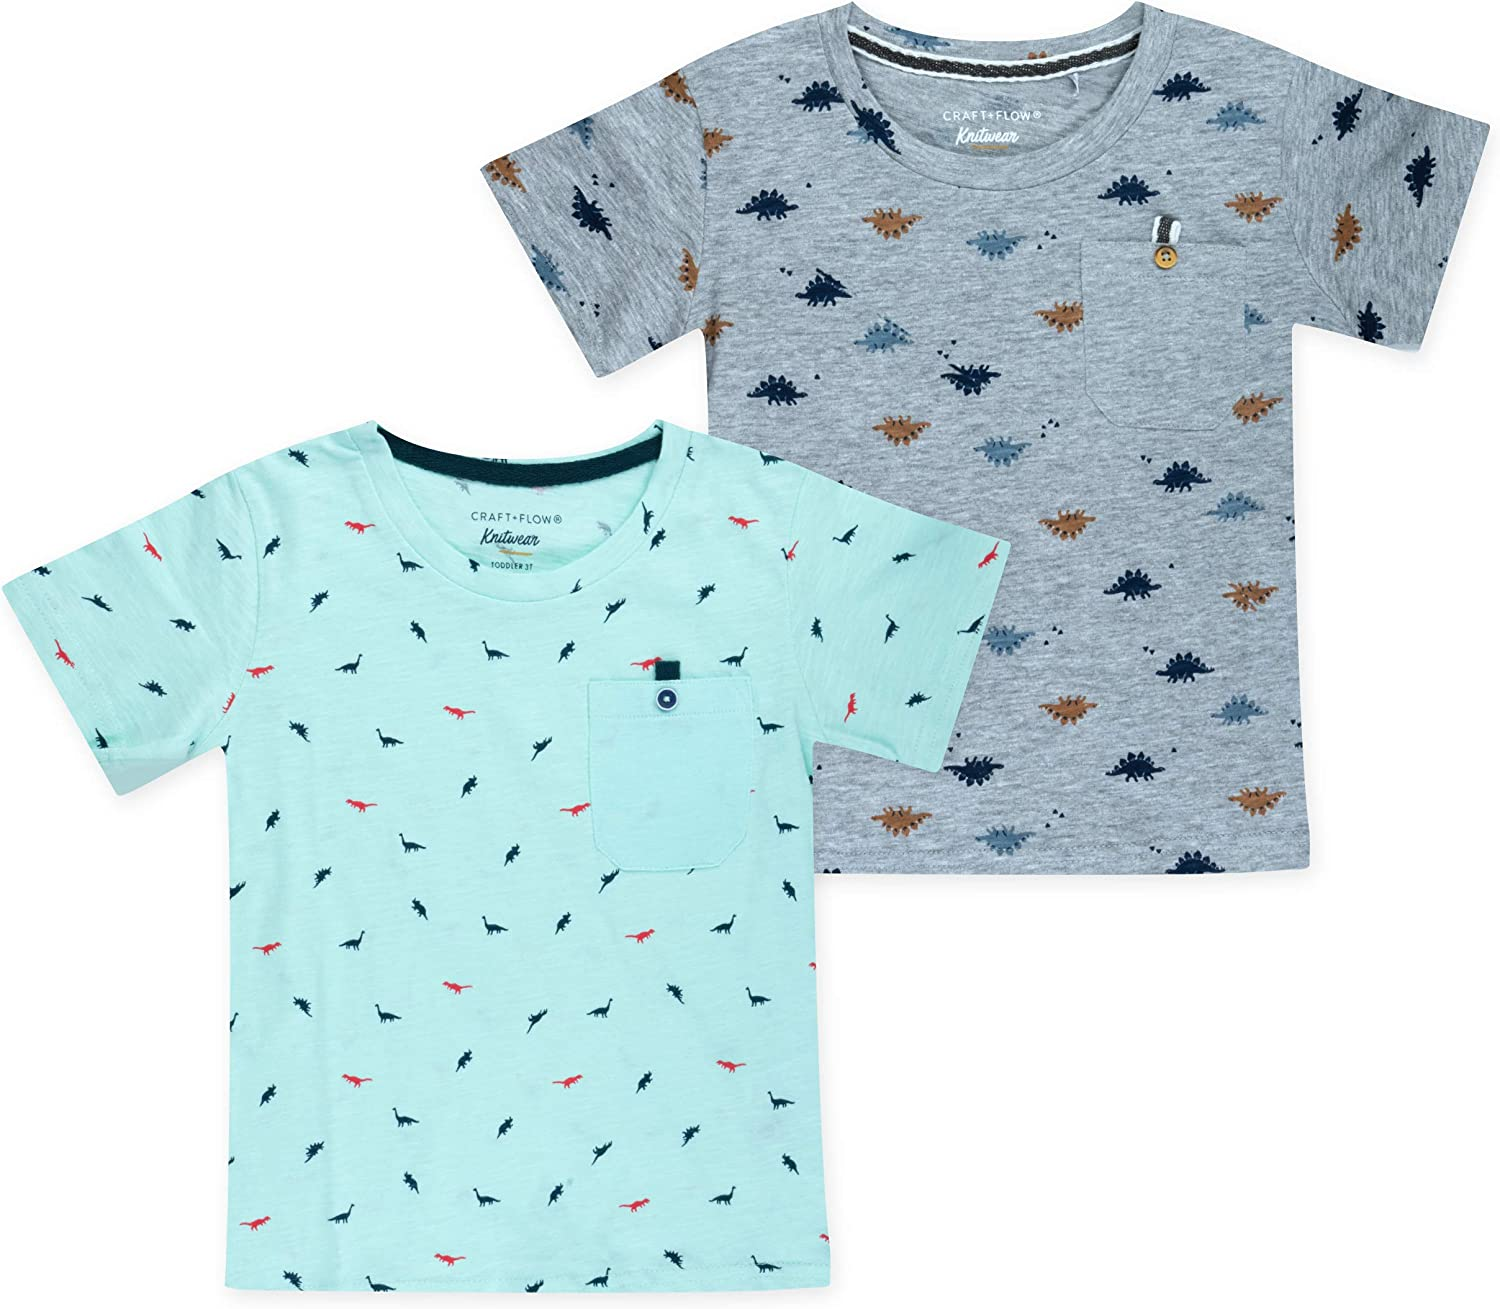 CRAFT + FLOW - 2-Pack Youth Boys Cotton T-Shirts for Toddlers (Size 2T-4T)